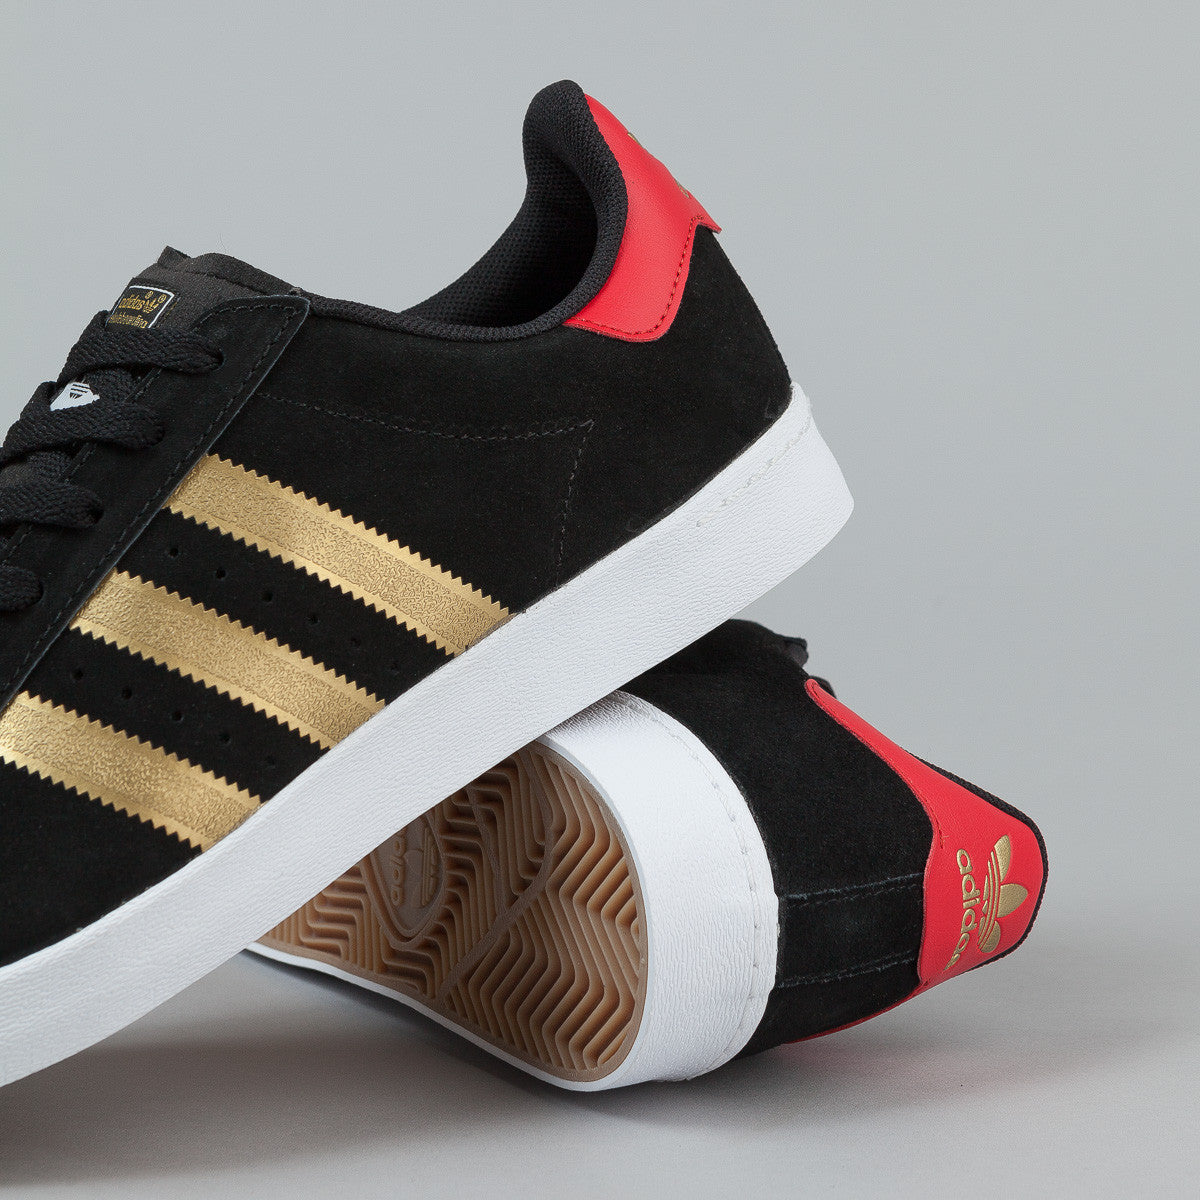 adidas Superstar Up 2 STR S82794 S82794 E MEGASPORT.DE